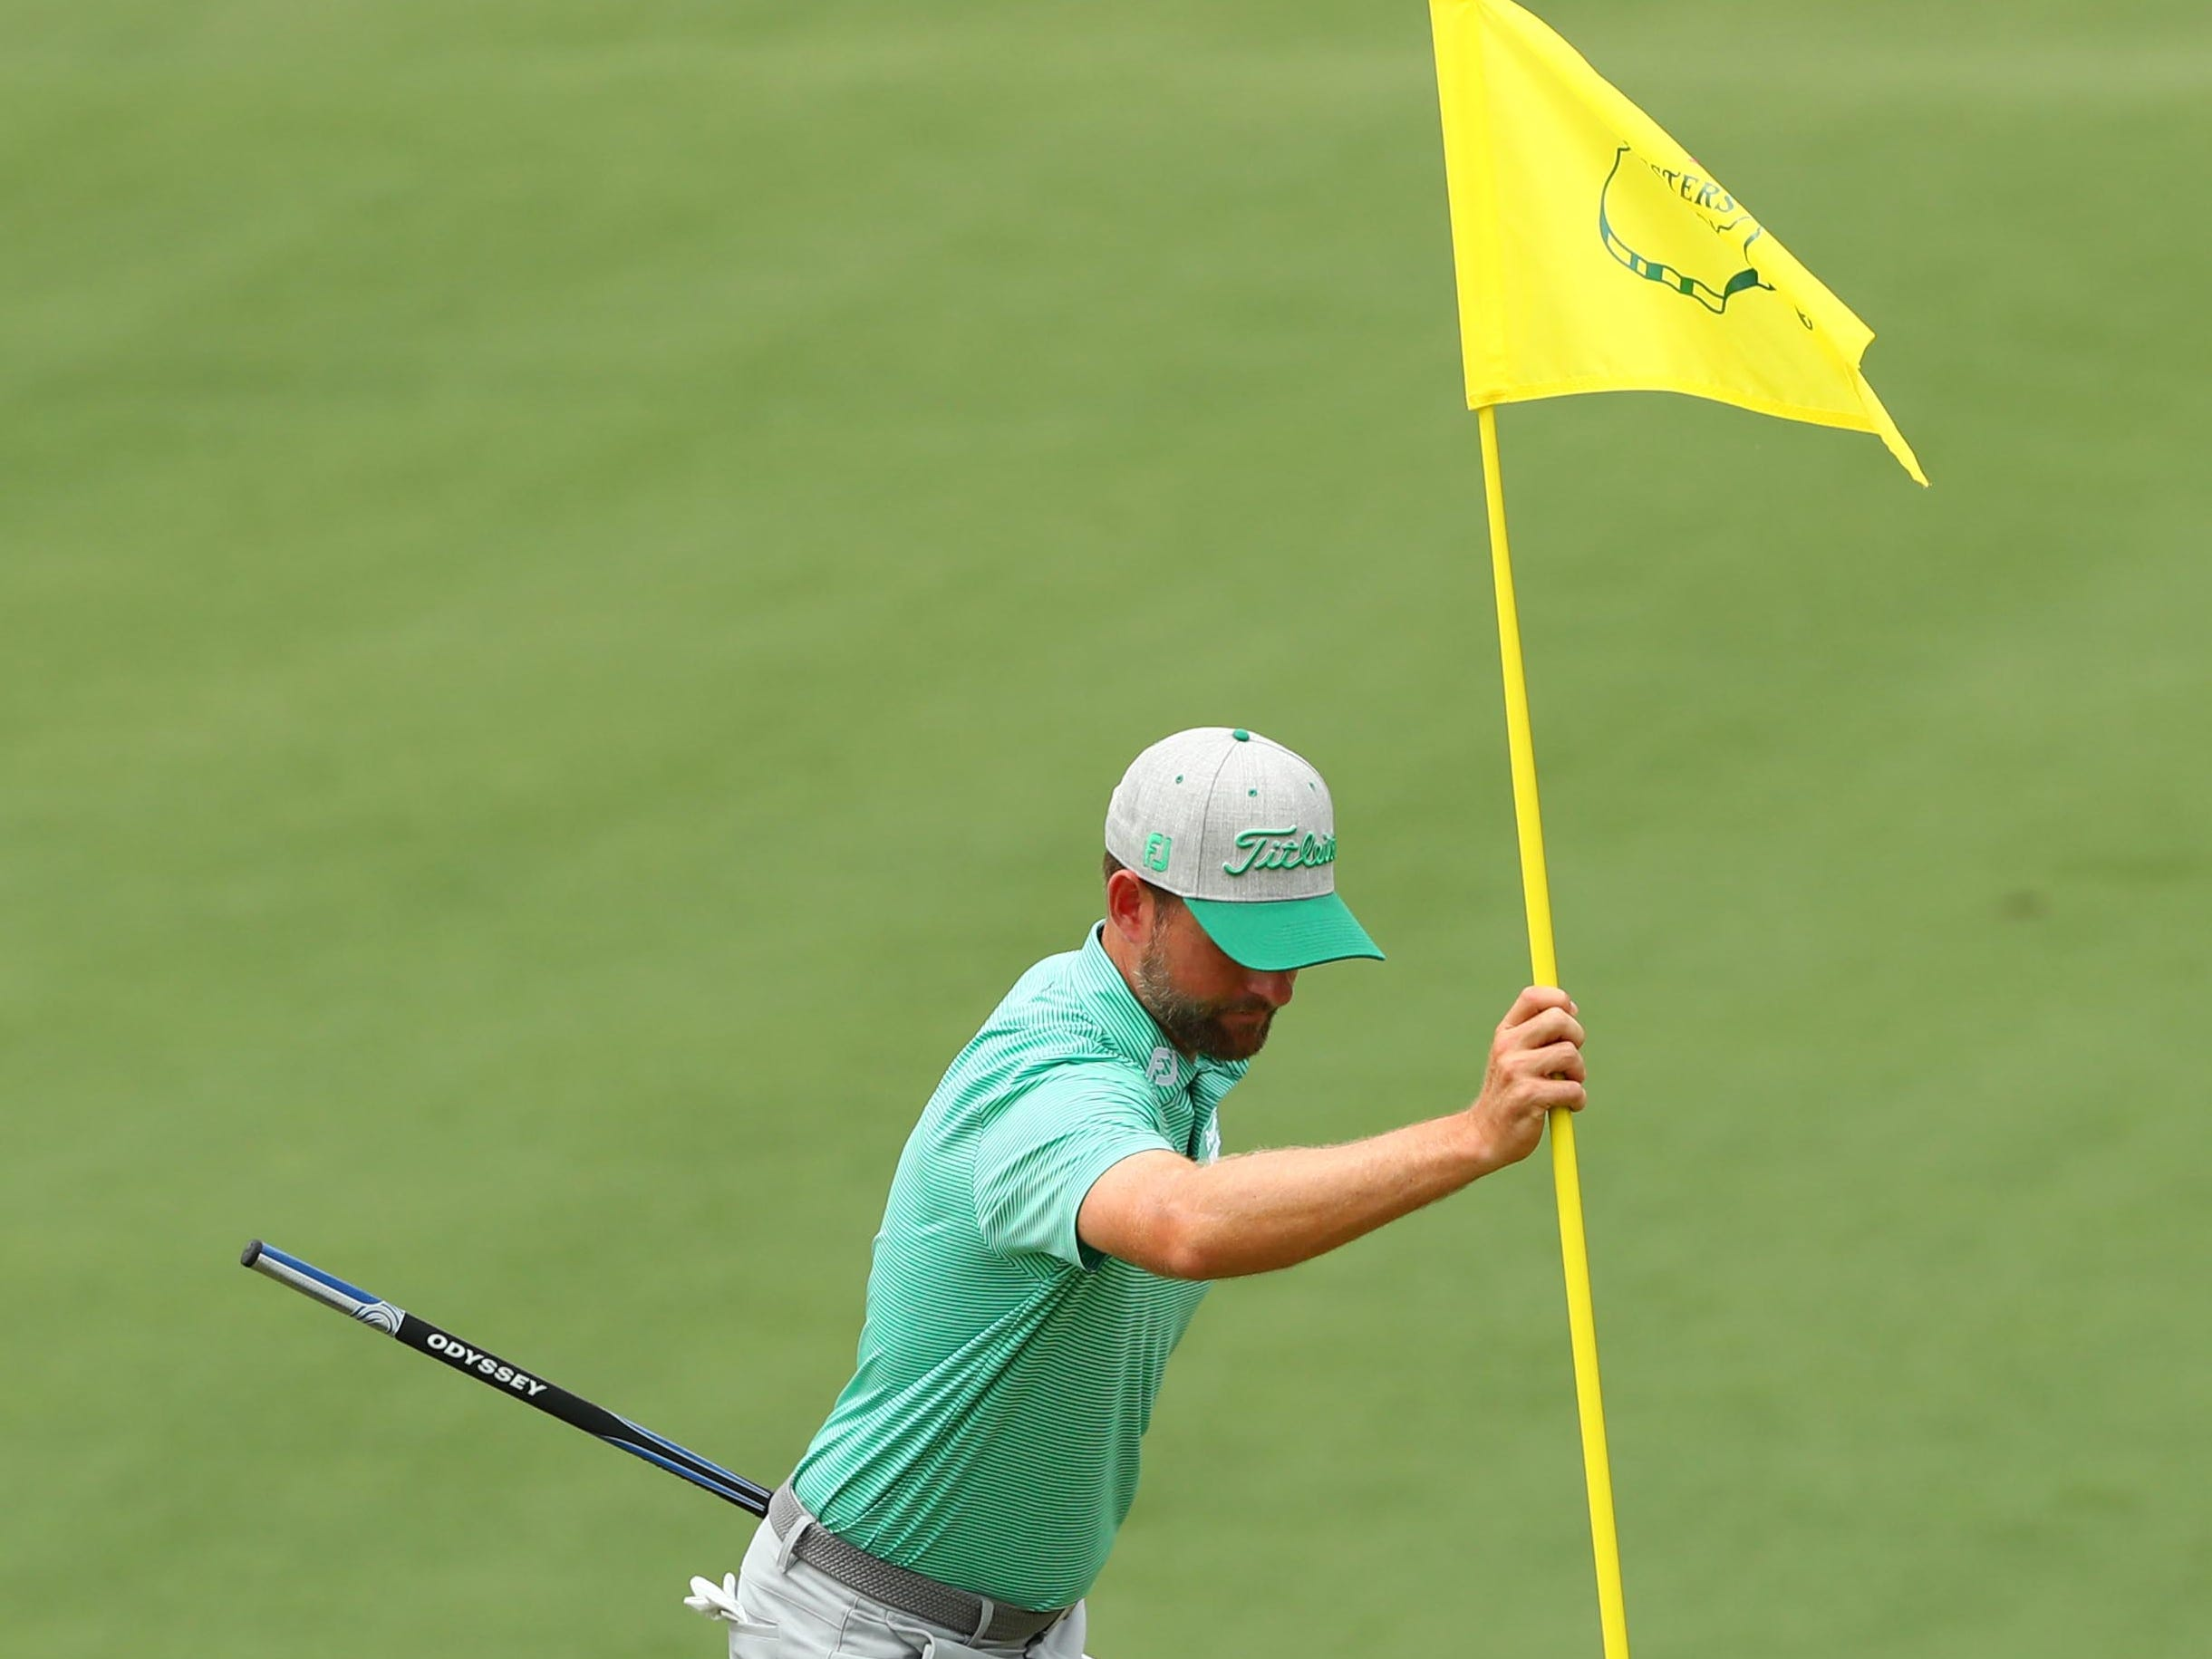 Apr 12, 2019; Augusta, GA, USA; Webb Simpson removes the flag from the 2nd hole during the second round of The Masters golf tournament at Augusta National Golf Club. Mandatory Credit: Rob Schumacher-USA TODAY Sports